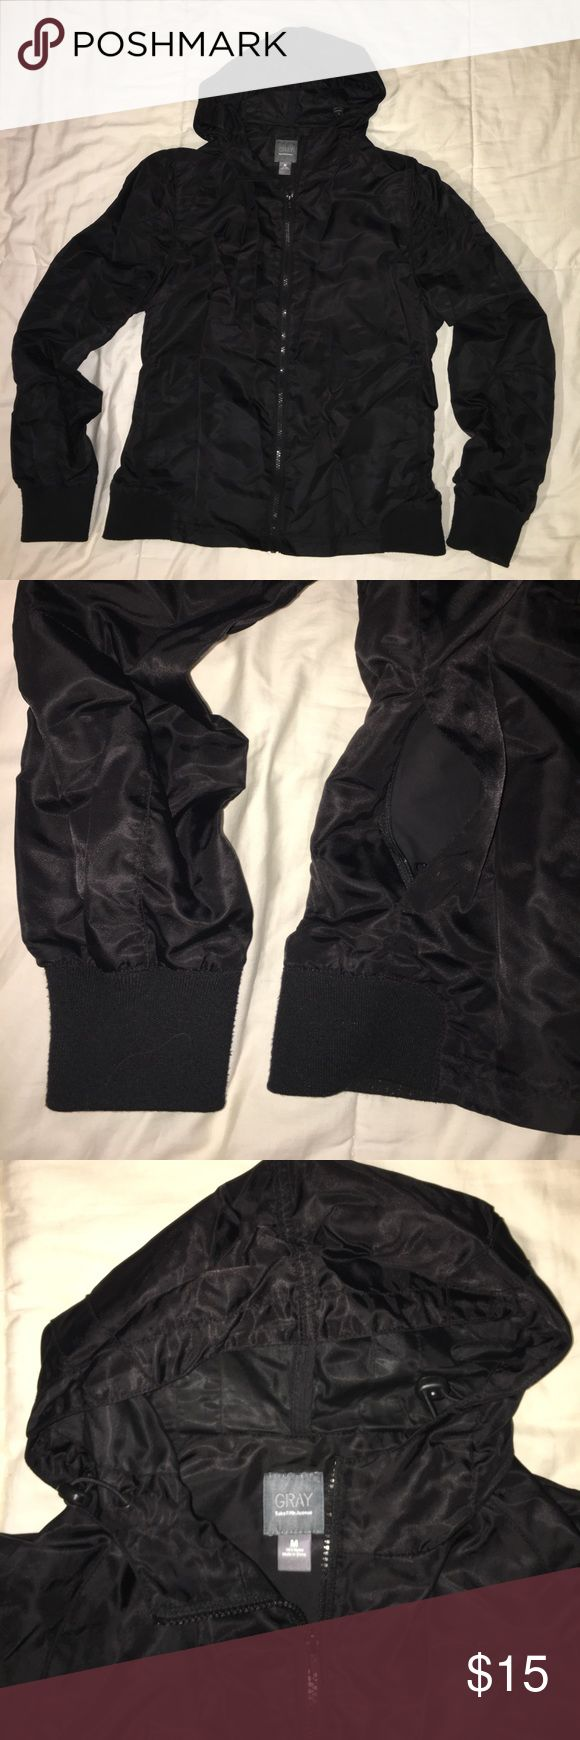 US-M Saks Off 5th LiteWeight WaterResistant Jacket Gently Used Jackets & Coats Lightweight & Shirt Jackets